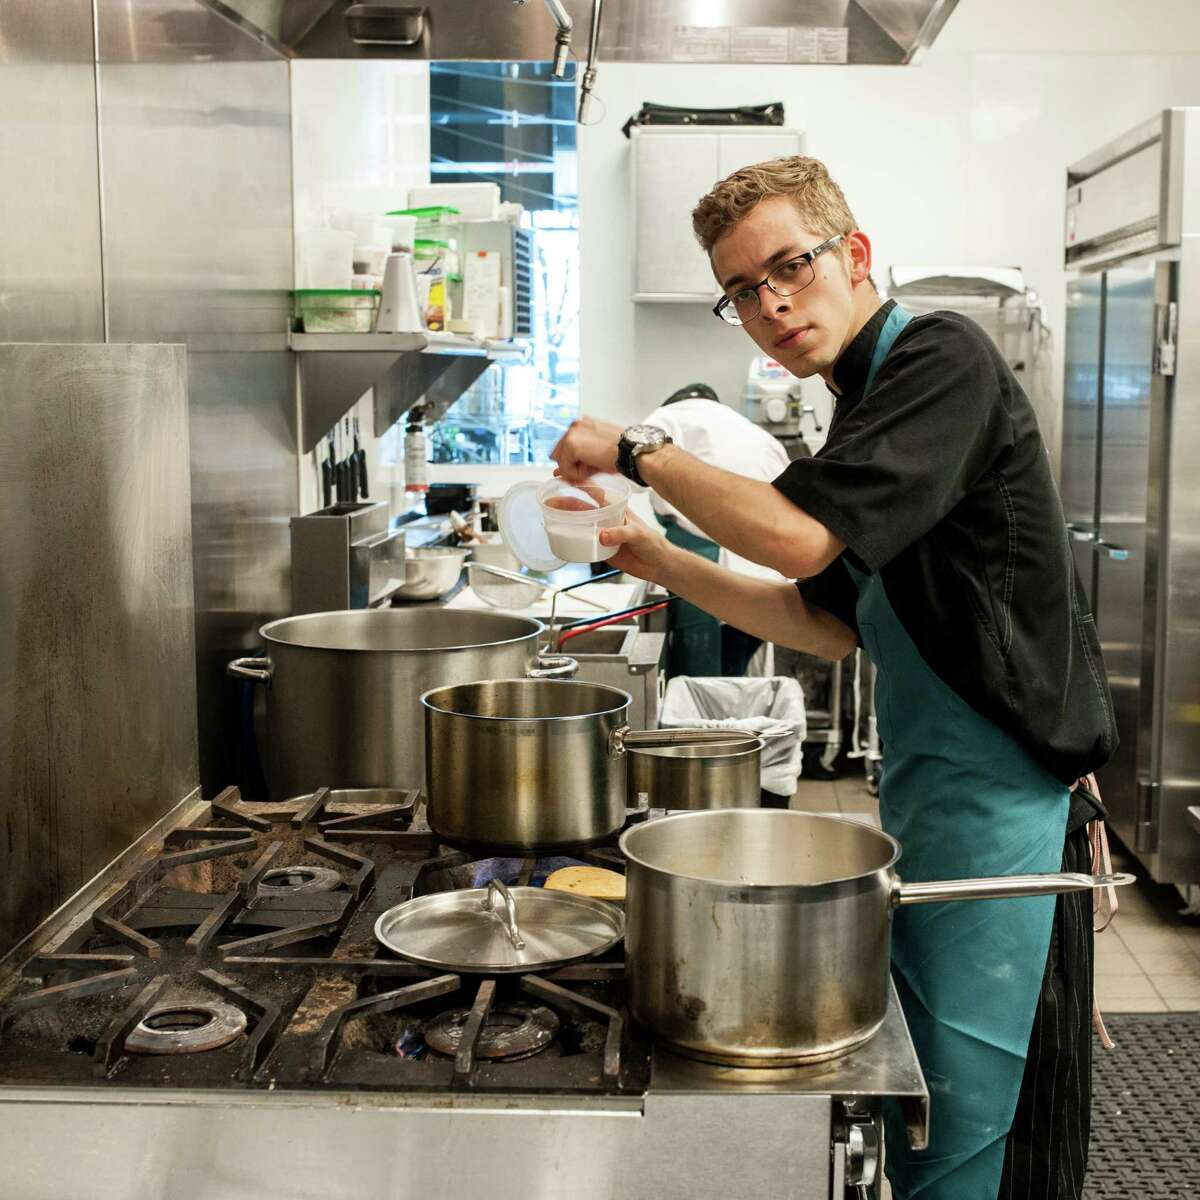 Chef Omar Pereney, shown in the kitchen at Peska Seafood Culture, has filed suit against his former employer. Click through to see scenes from his past work there.